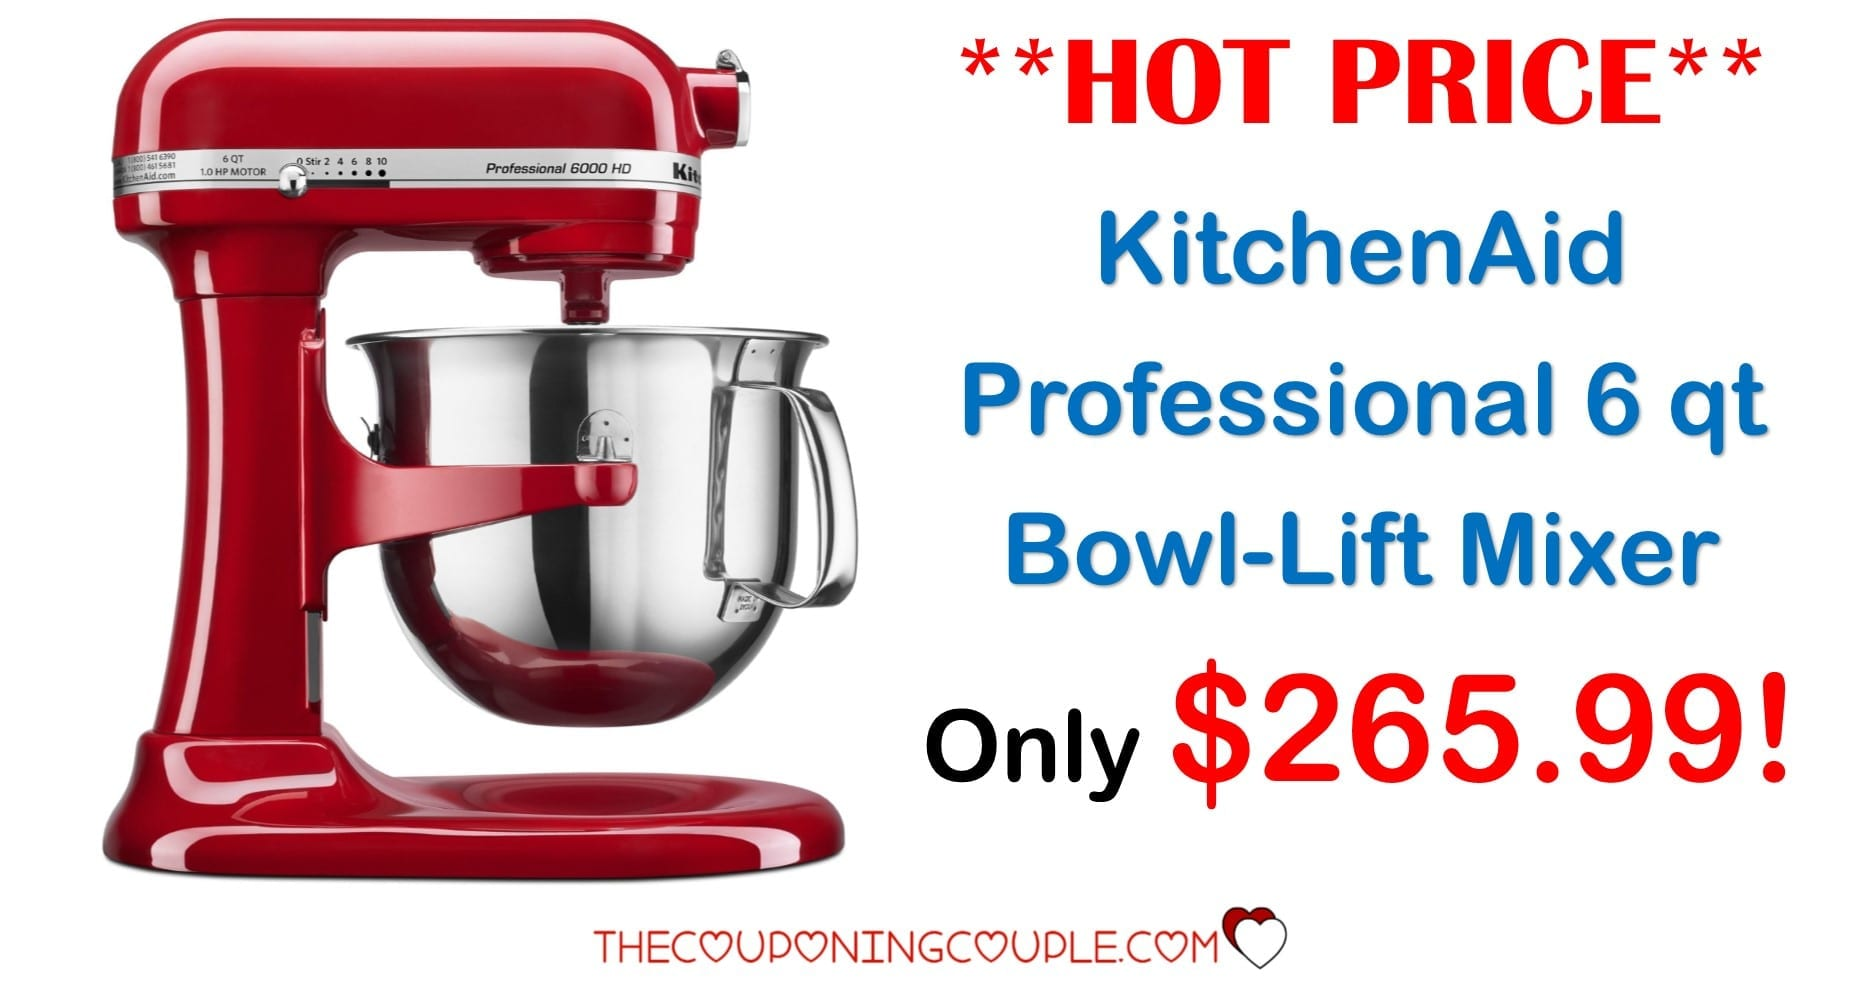 kitchen aid coupons artisan stand mixer best price ever kitchenaid professional 6 qt bowl lift